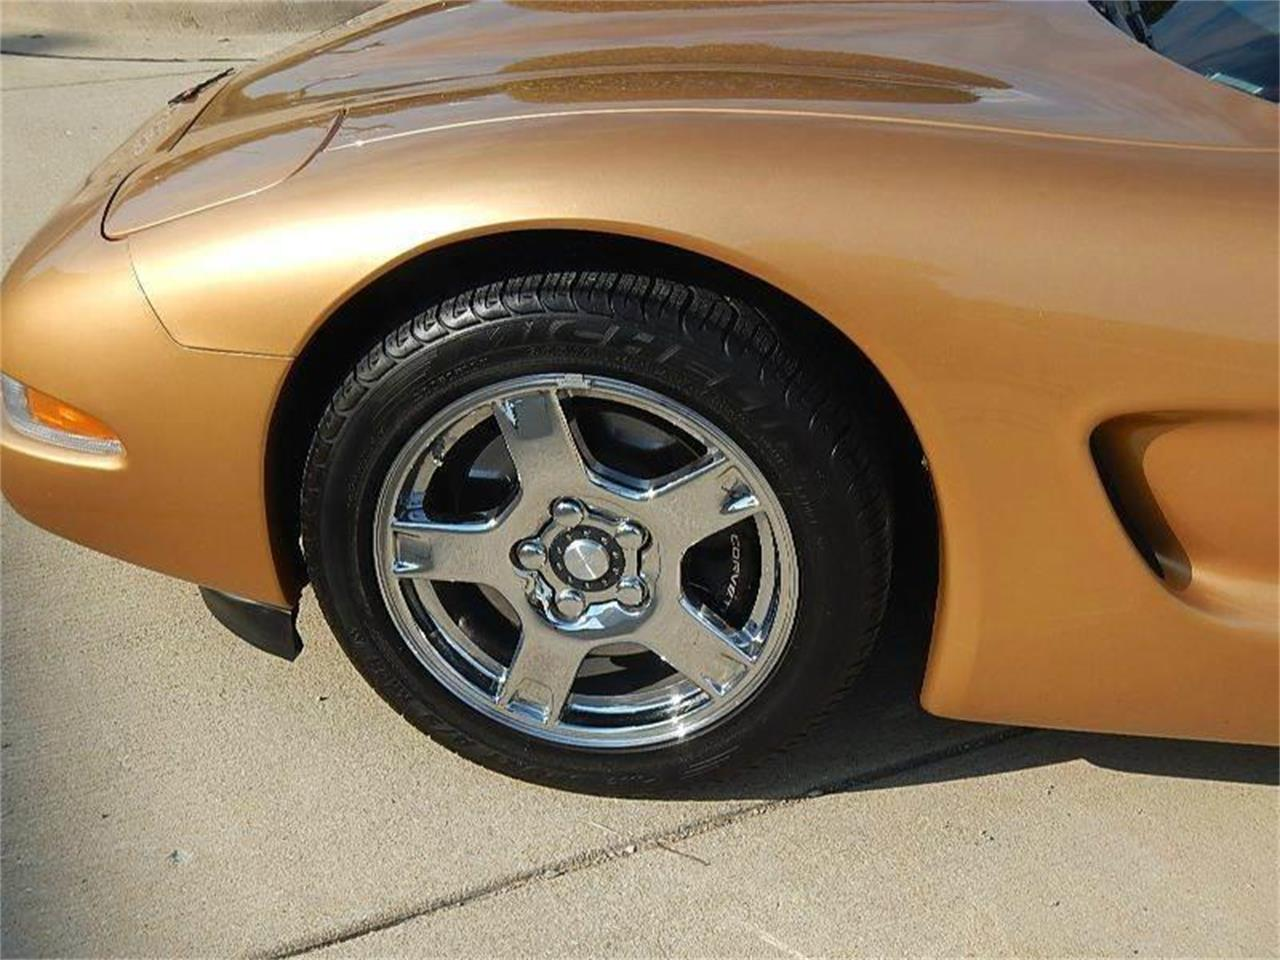 1998 Chevrolet Corvette for sale in Burr Ridge, IL – photo 7